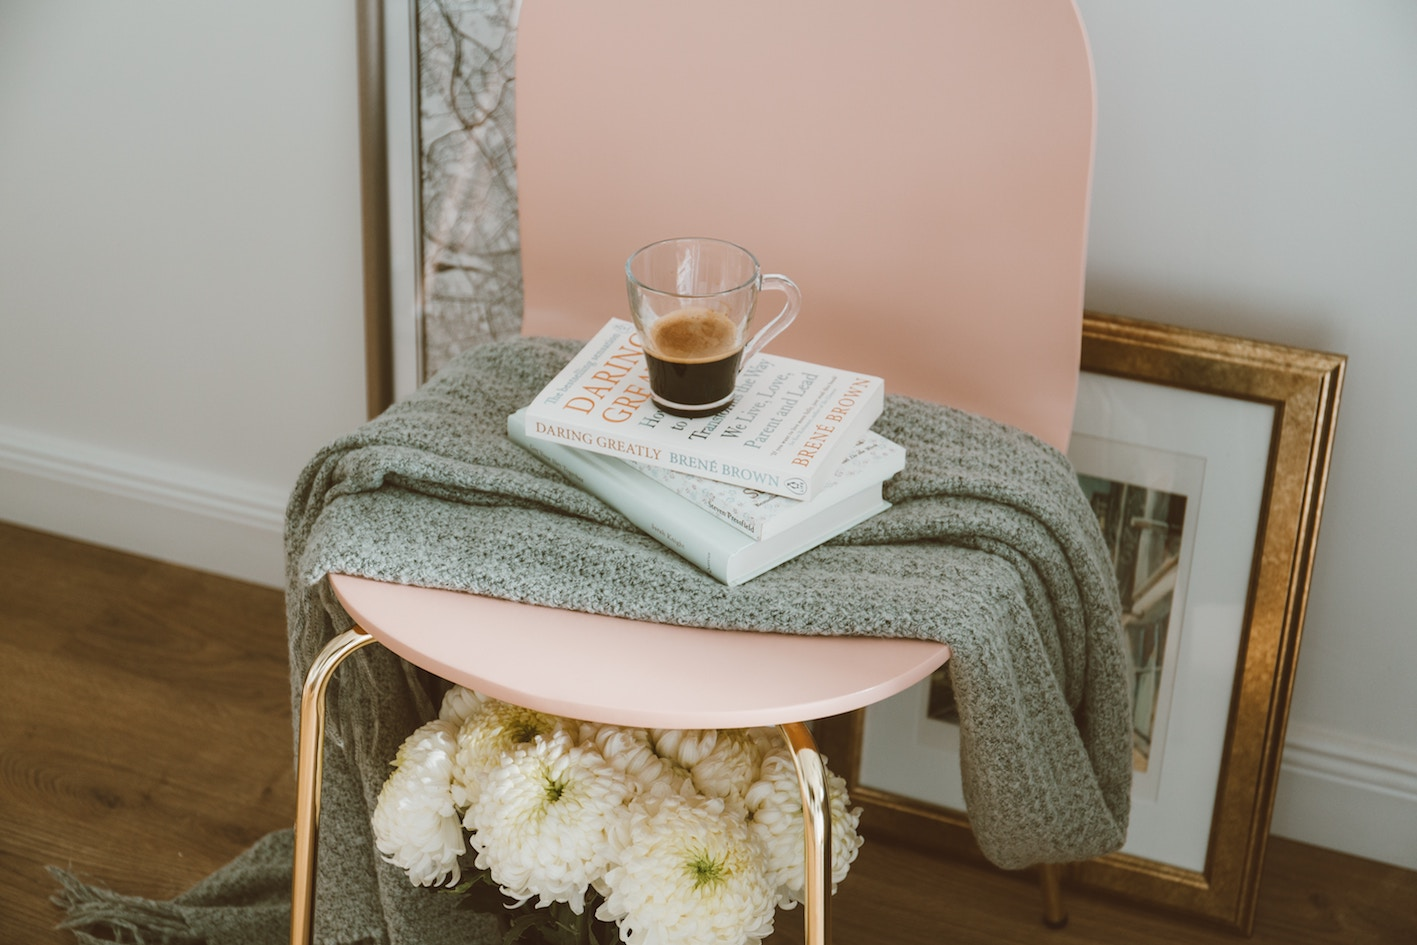 5 WAYS TO COZY UP YOUR HOME: FALL DECORATING IDEAS